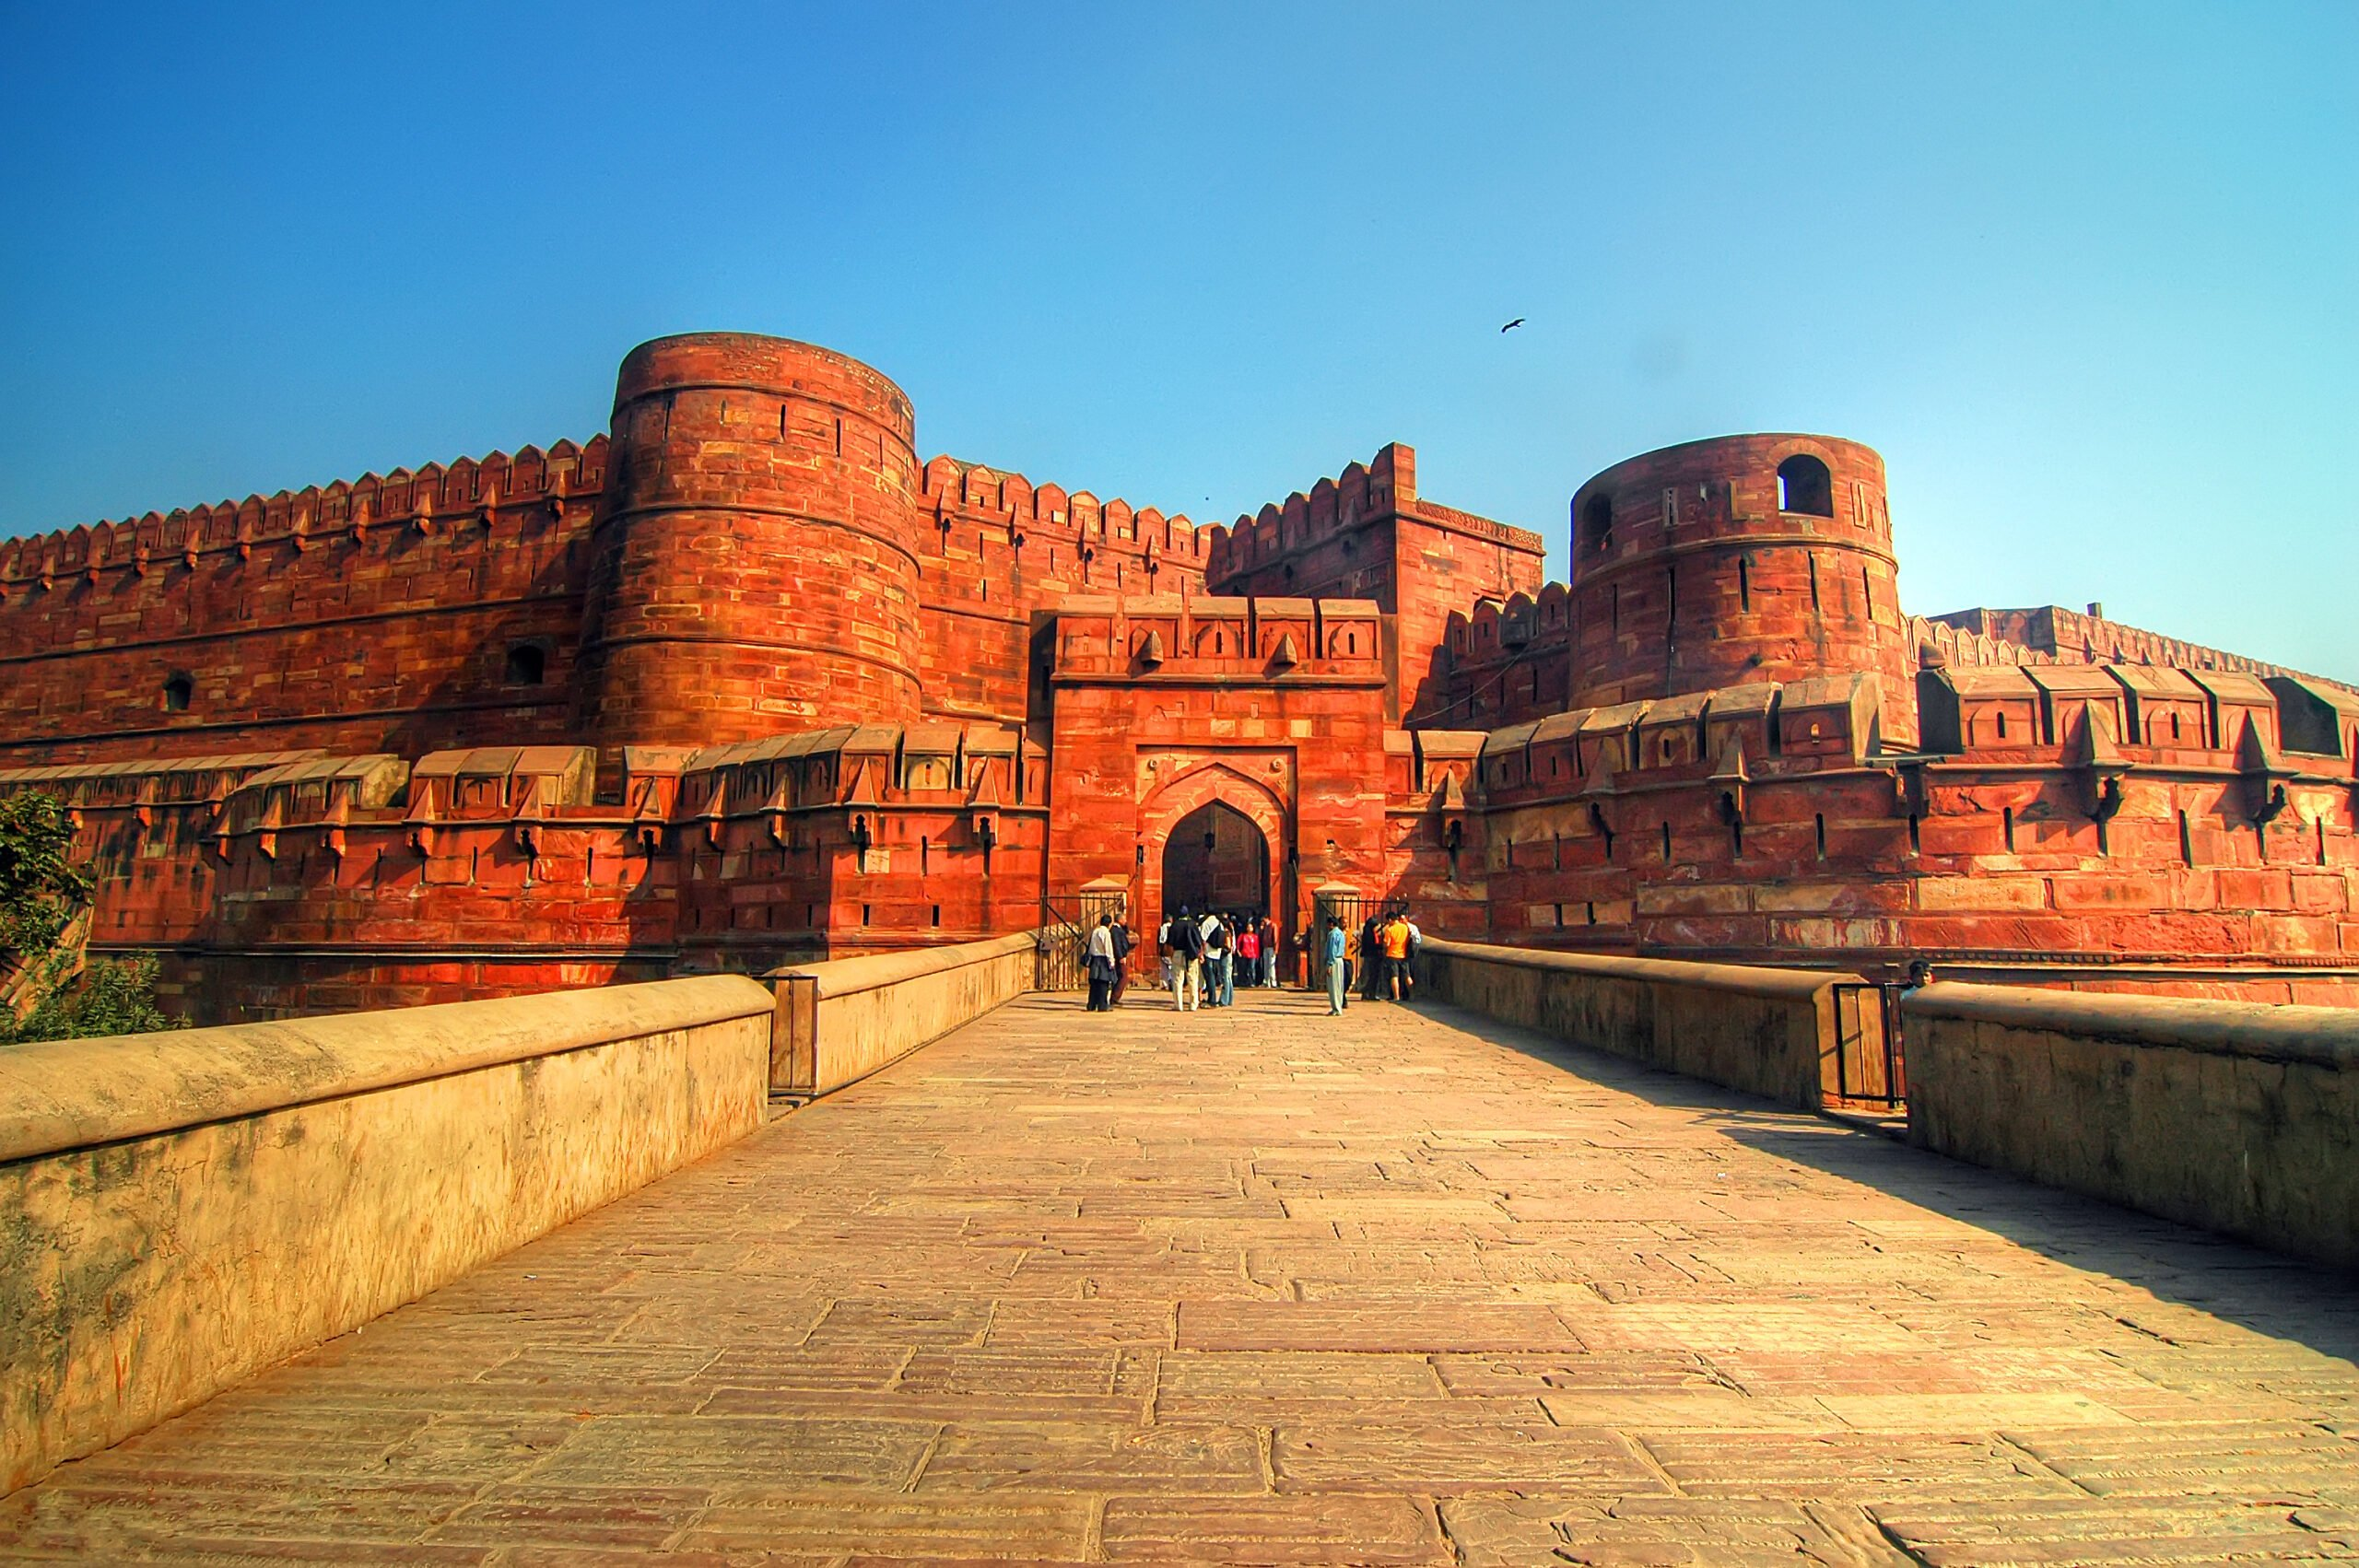 Discover How The Fate Of Agra Fort Was Entwined With The Defeat Of Hemu The Last Hindu King Of North India In Our Taj Mahal & Wonders Of Agra Tour